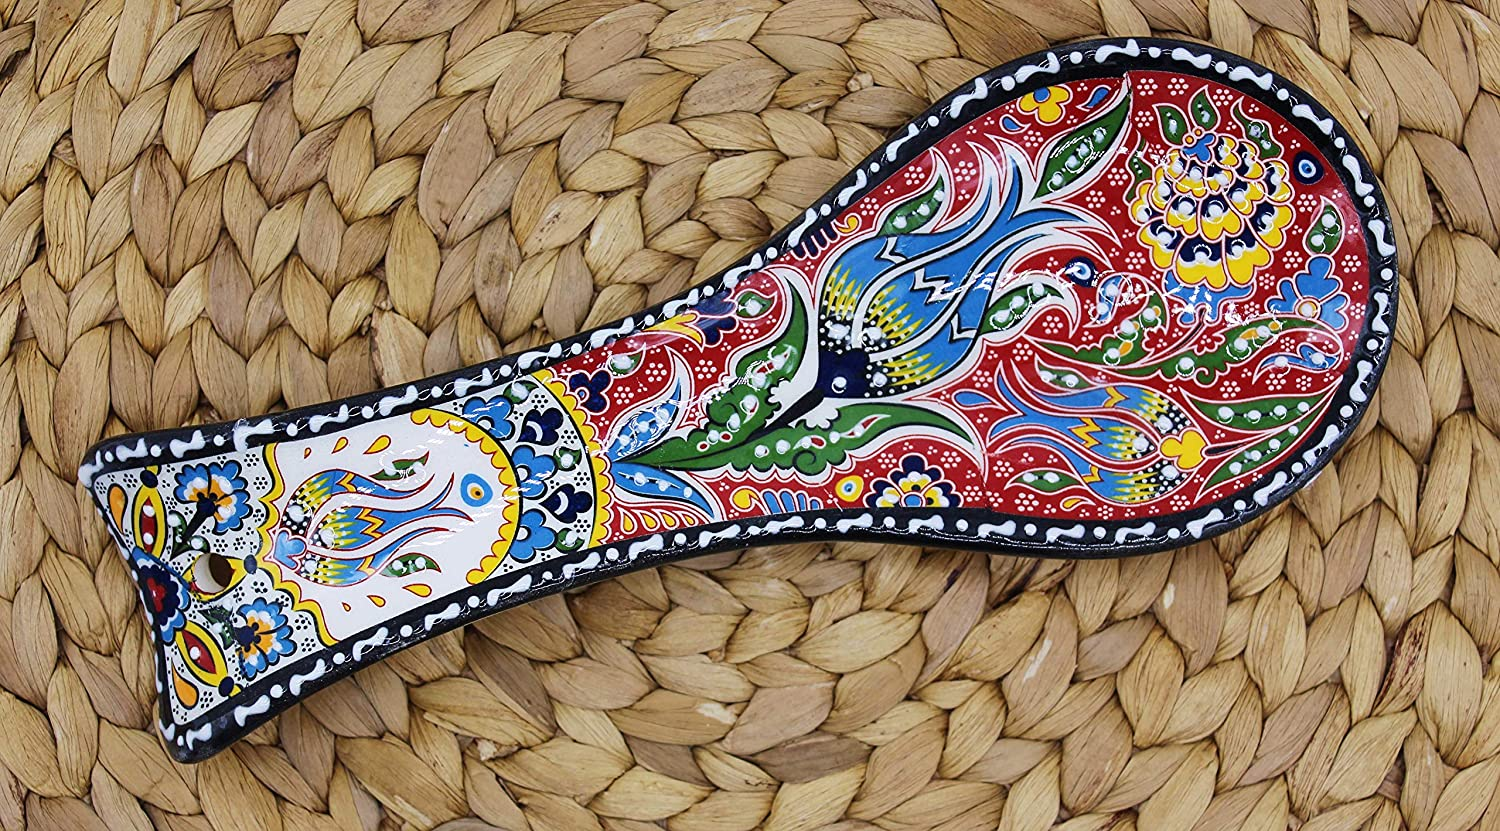 HeraCraft Hand Painted Design Turkish Ceramic Spoon Rest Handcrafted Pinch Multicolor Spoon Rest for kitchen Counter Colorful Kitchen Ceramic Spoon Holder black